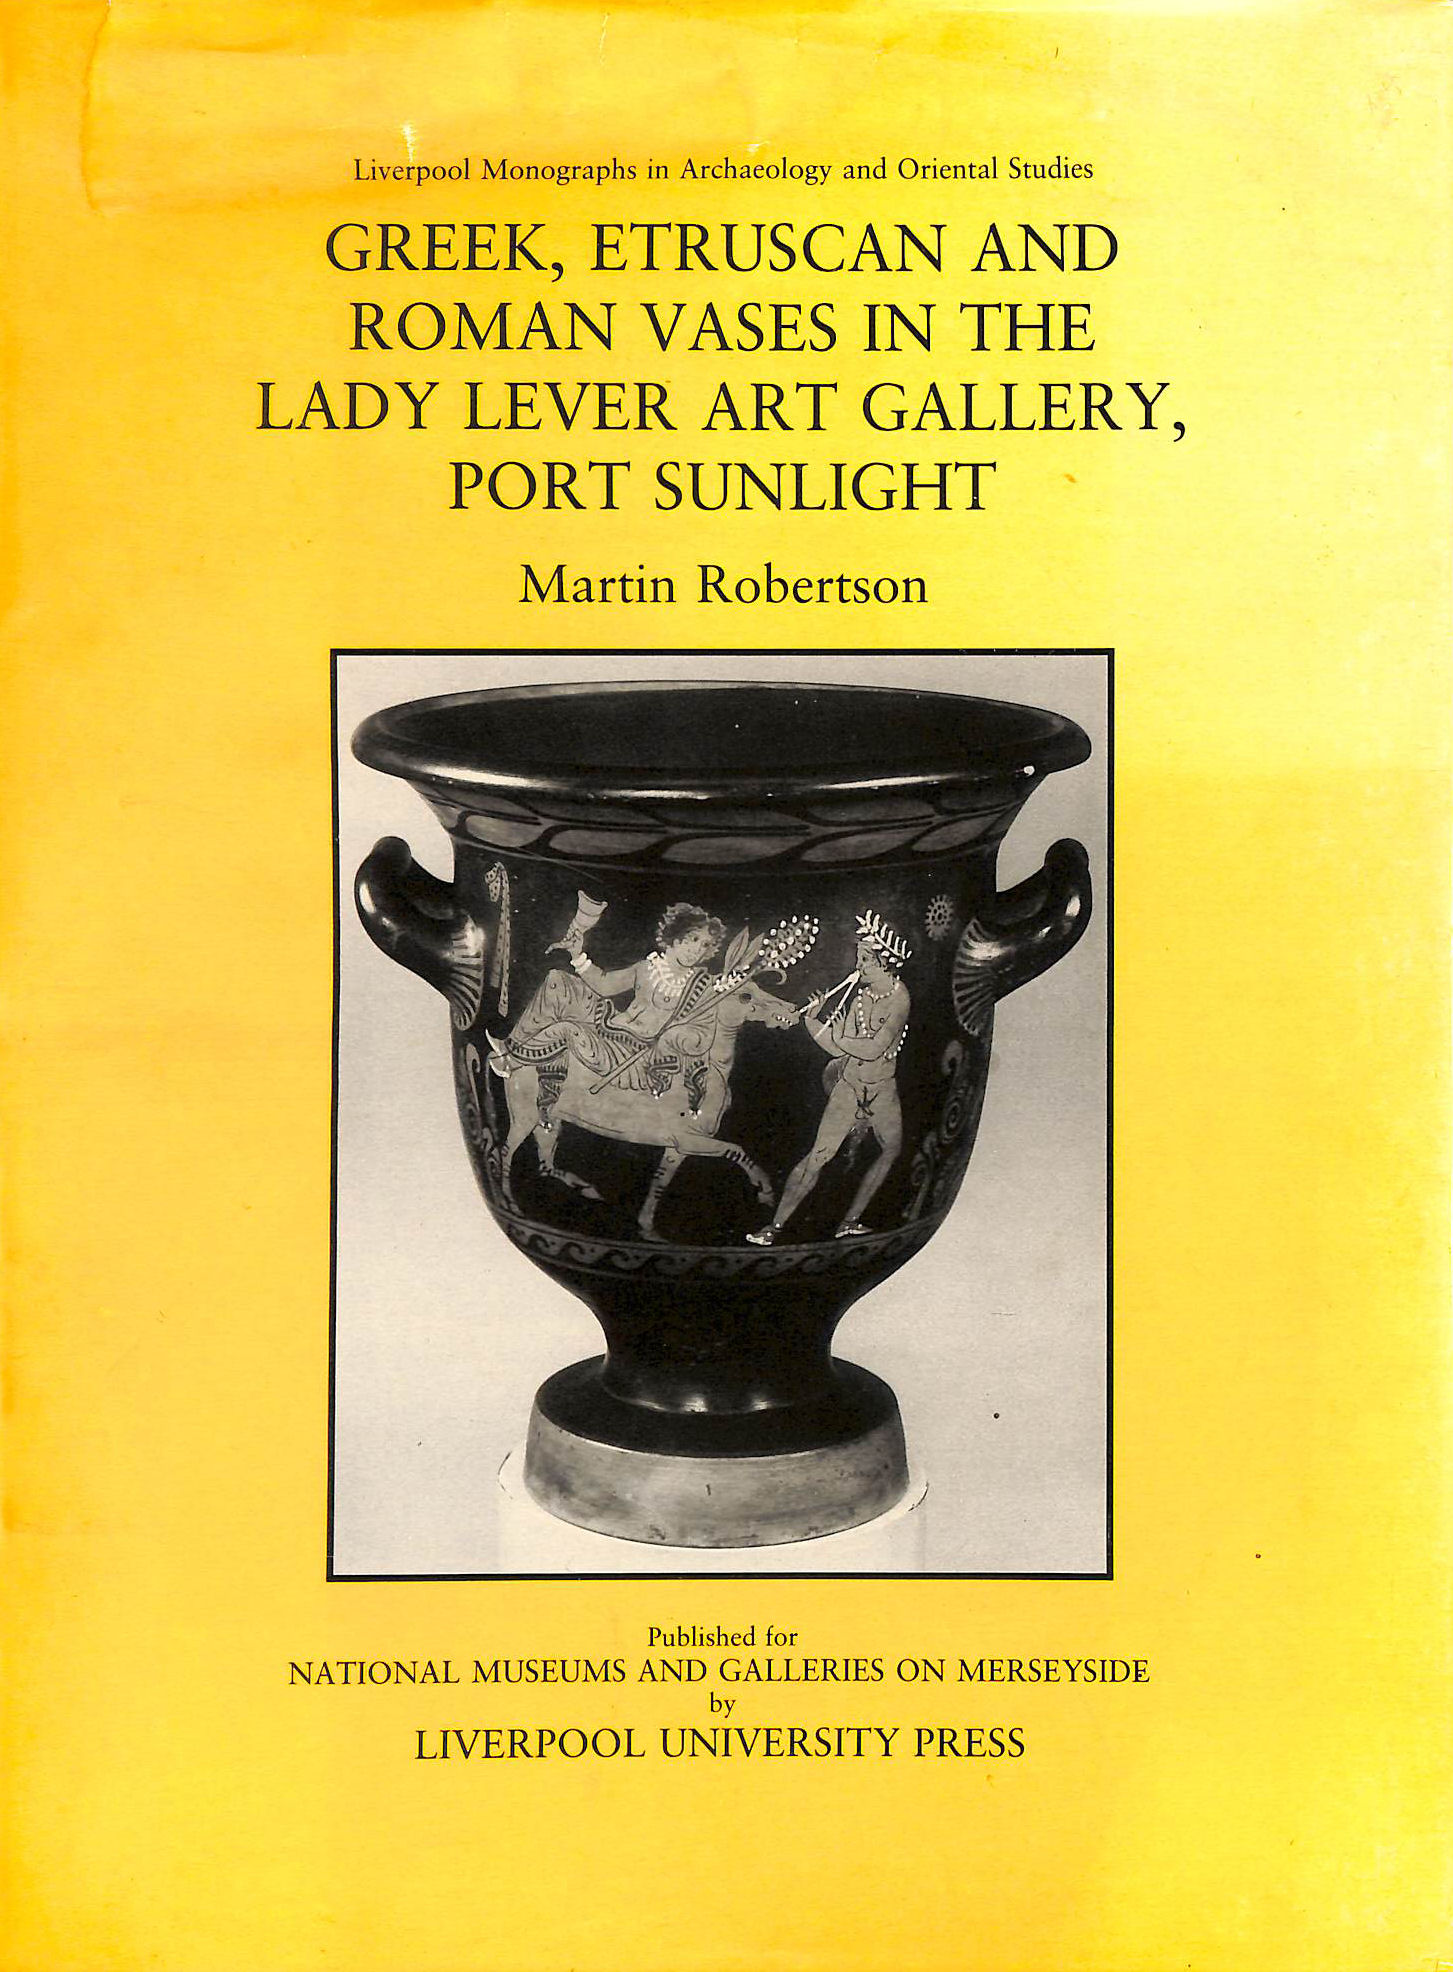 Image for Greek, Etruscan and Roman Vases in the Lady Lever Art Gallery, Port Sunlight